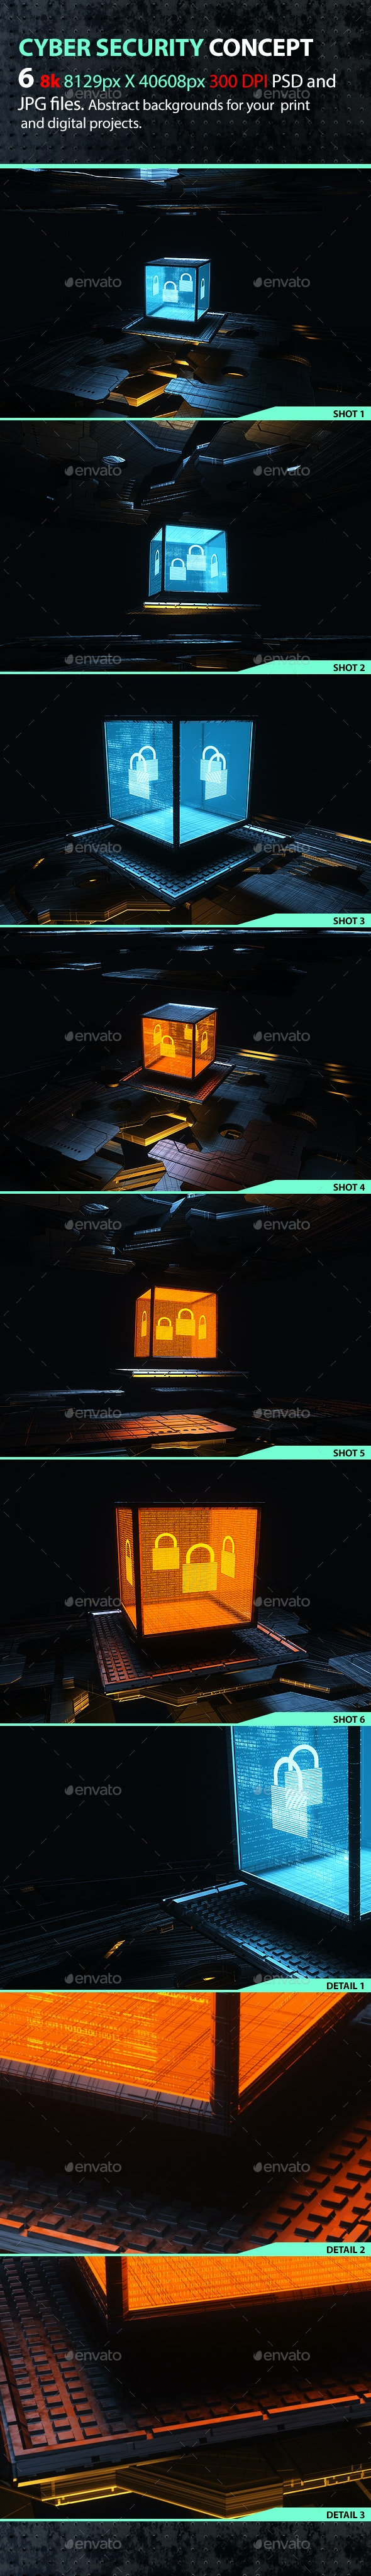 Cyber Security Concept - Tech / Futuristic Backgrounds